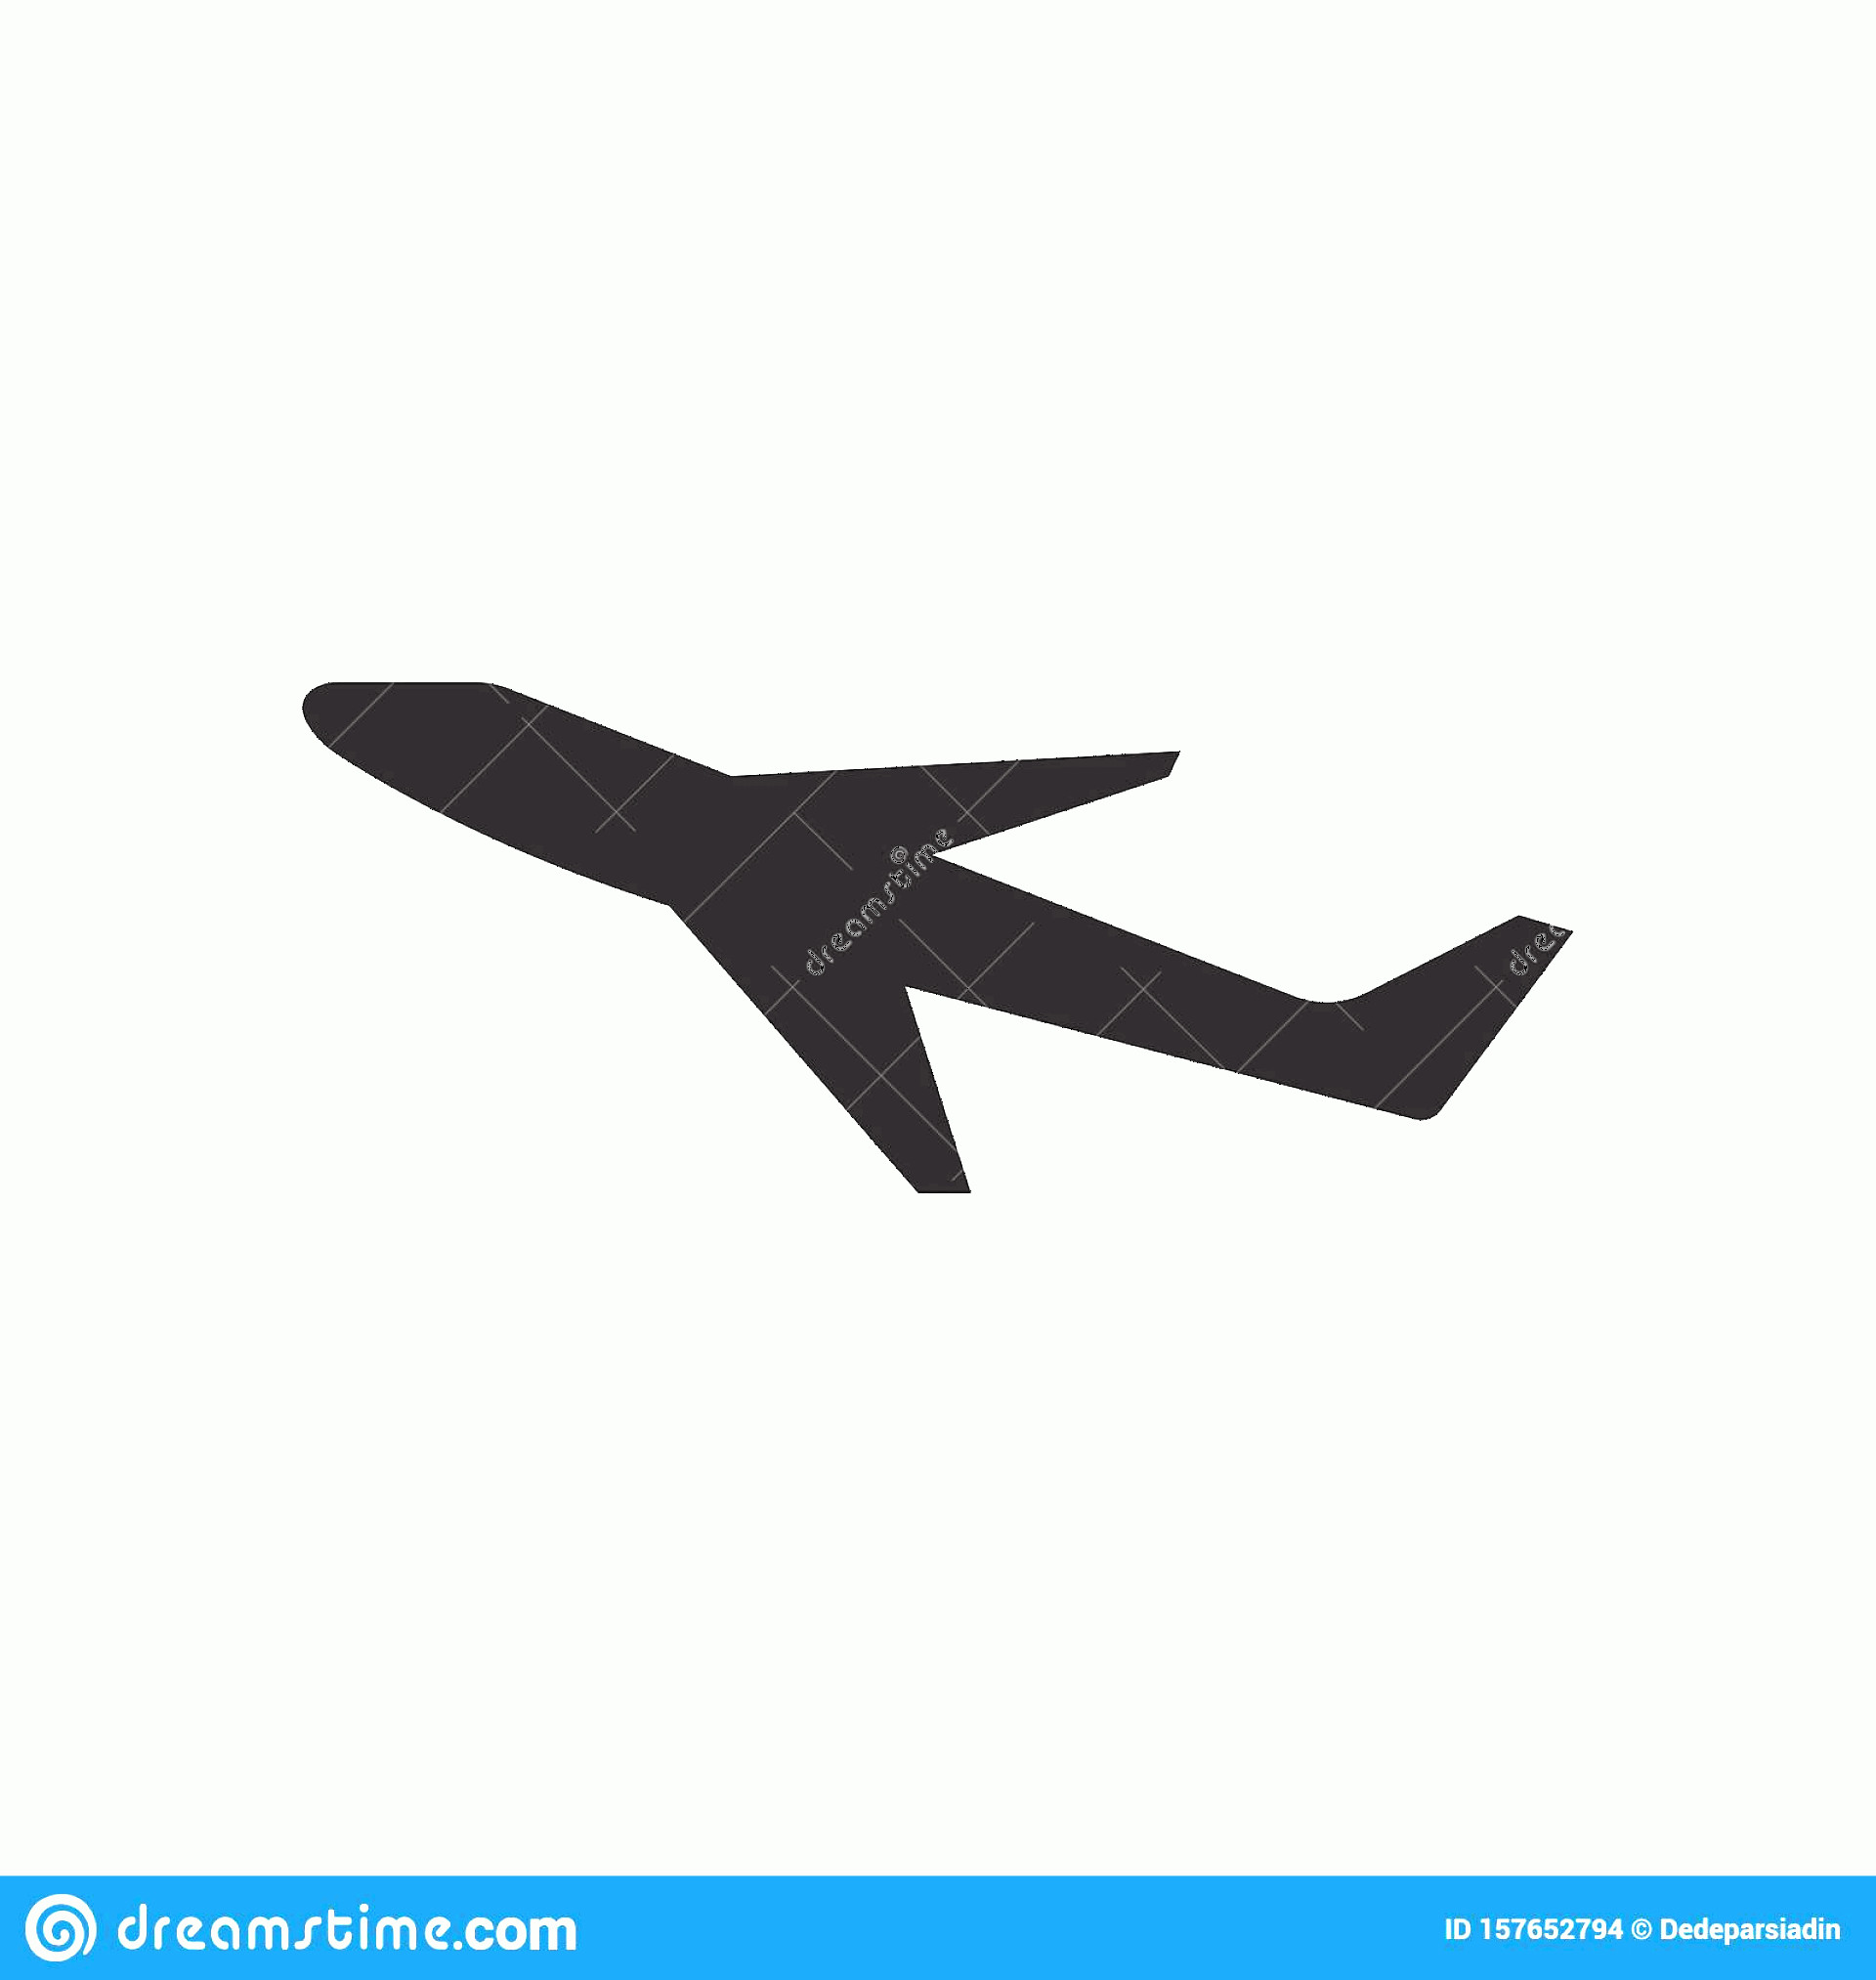 Aviation Vector Designs: Airplane Logo Template Vector Illustration Icon Design Plane Landing Abstract Clean Journey Pilot Modern Turbine Aeroplane Simple Image